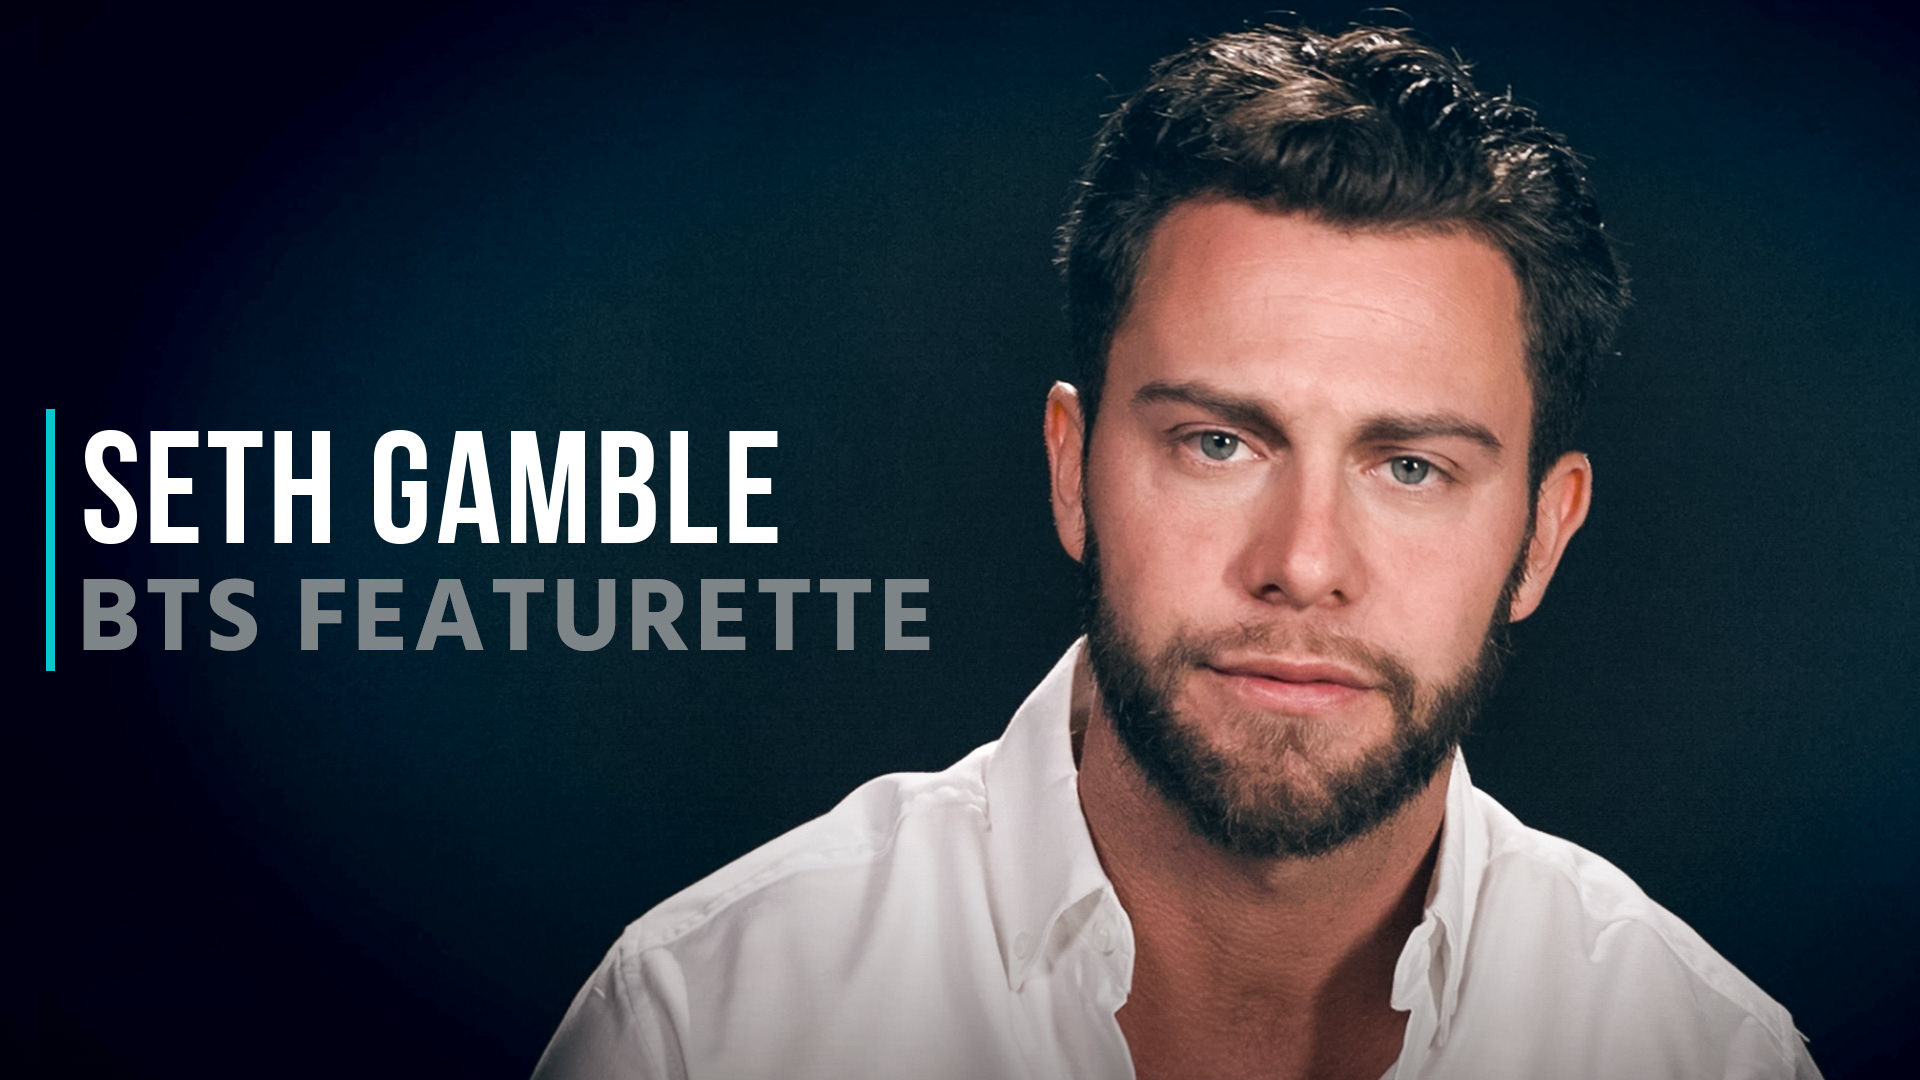 Seth Gamble: BTS Featurette - Seth Gamble 1